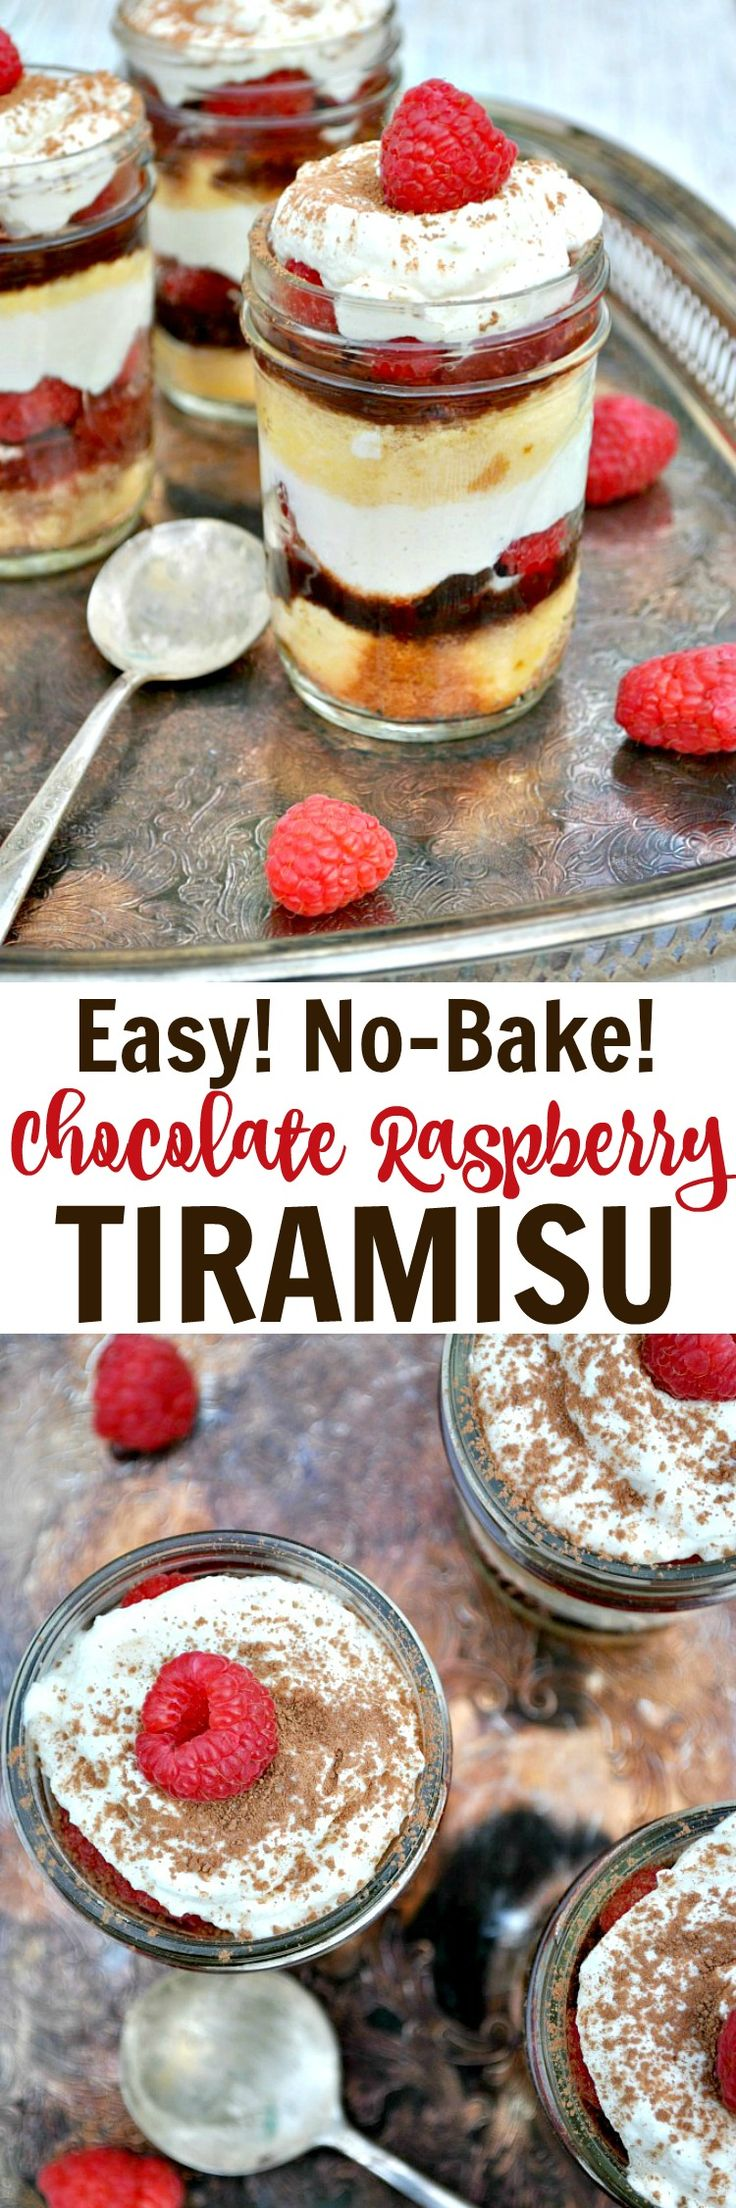 Just 15 minutes of prep for this Easy No-Bake Chocolate Raspberry Tiramisu! The perfect make-ahead dessert for Valentine's Day or other special occasions!